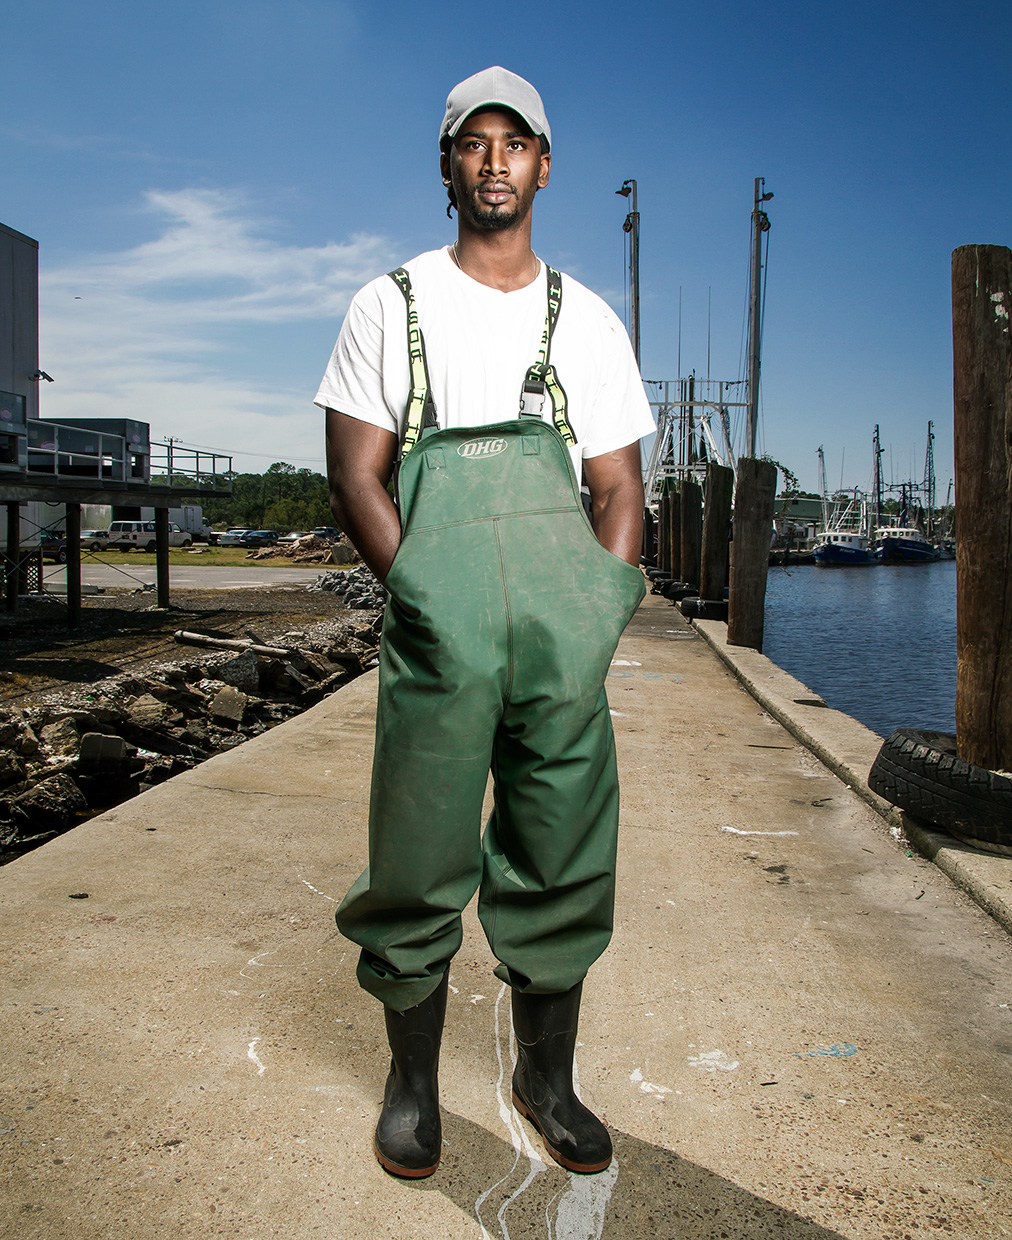 shrimper_MG_6596